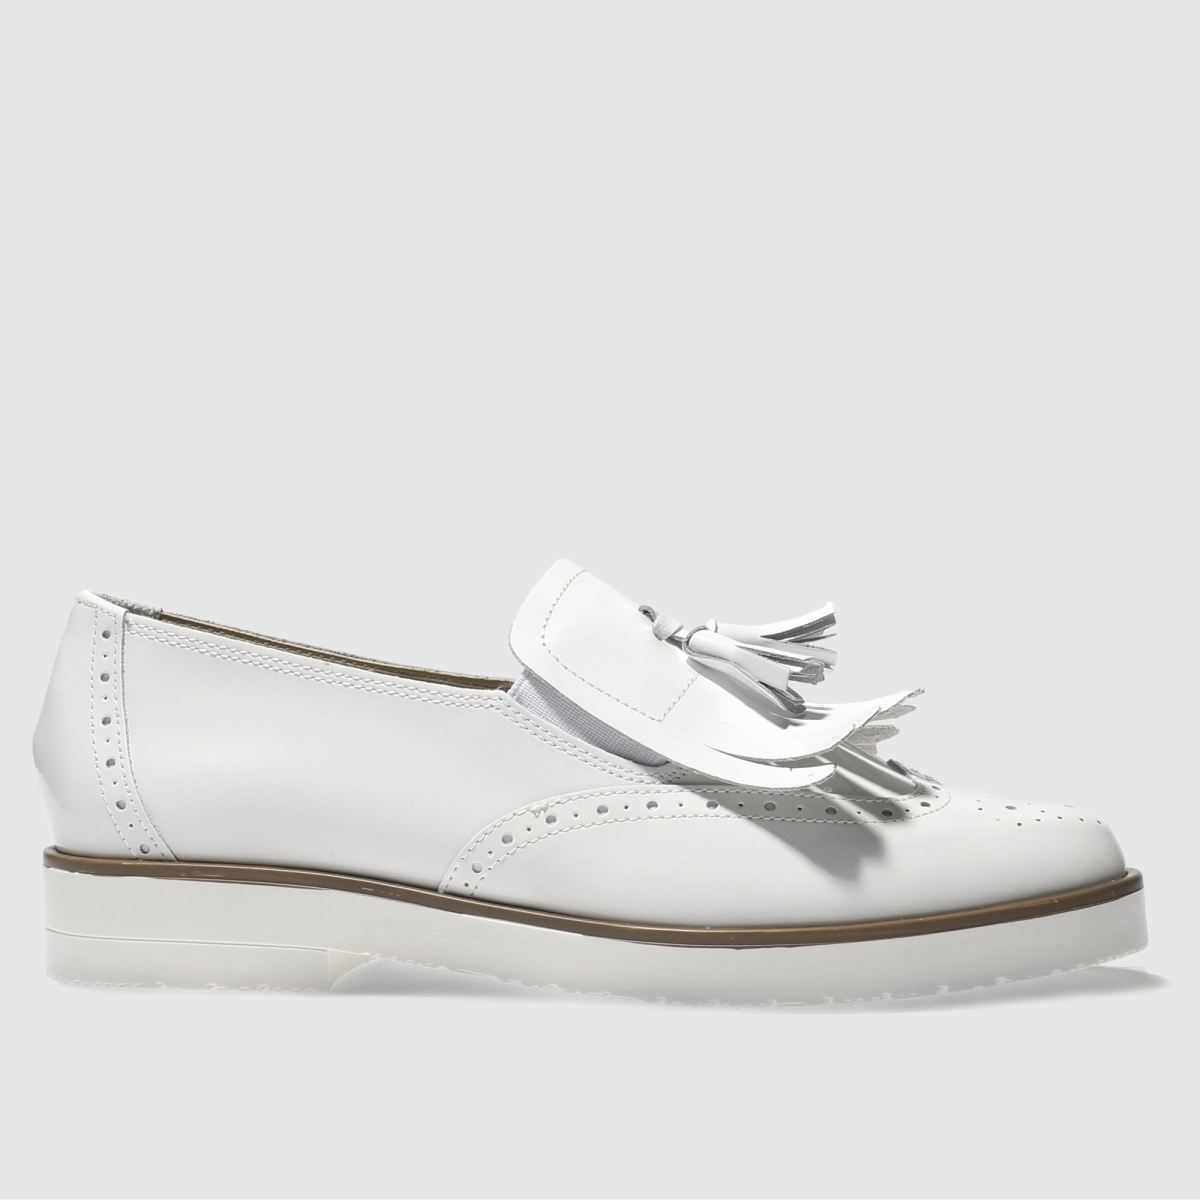 Schuh White Hunky Dory Flat Shoes